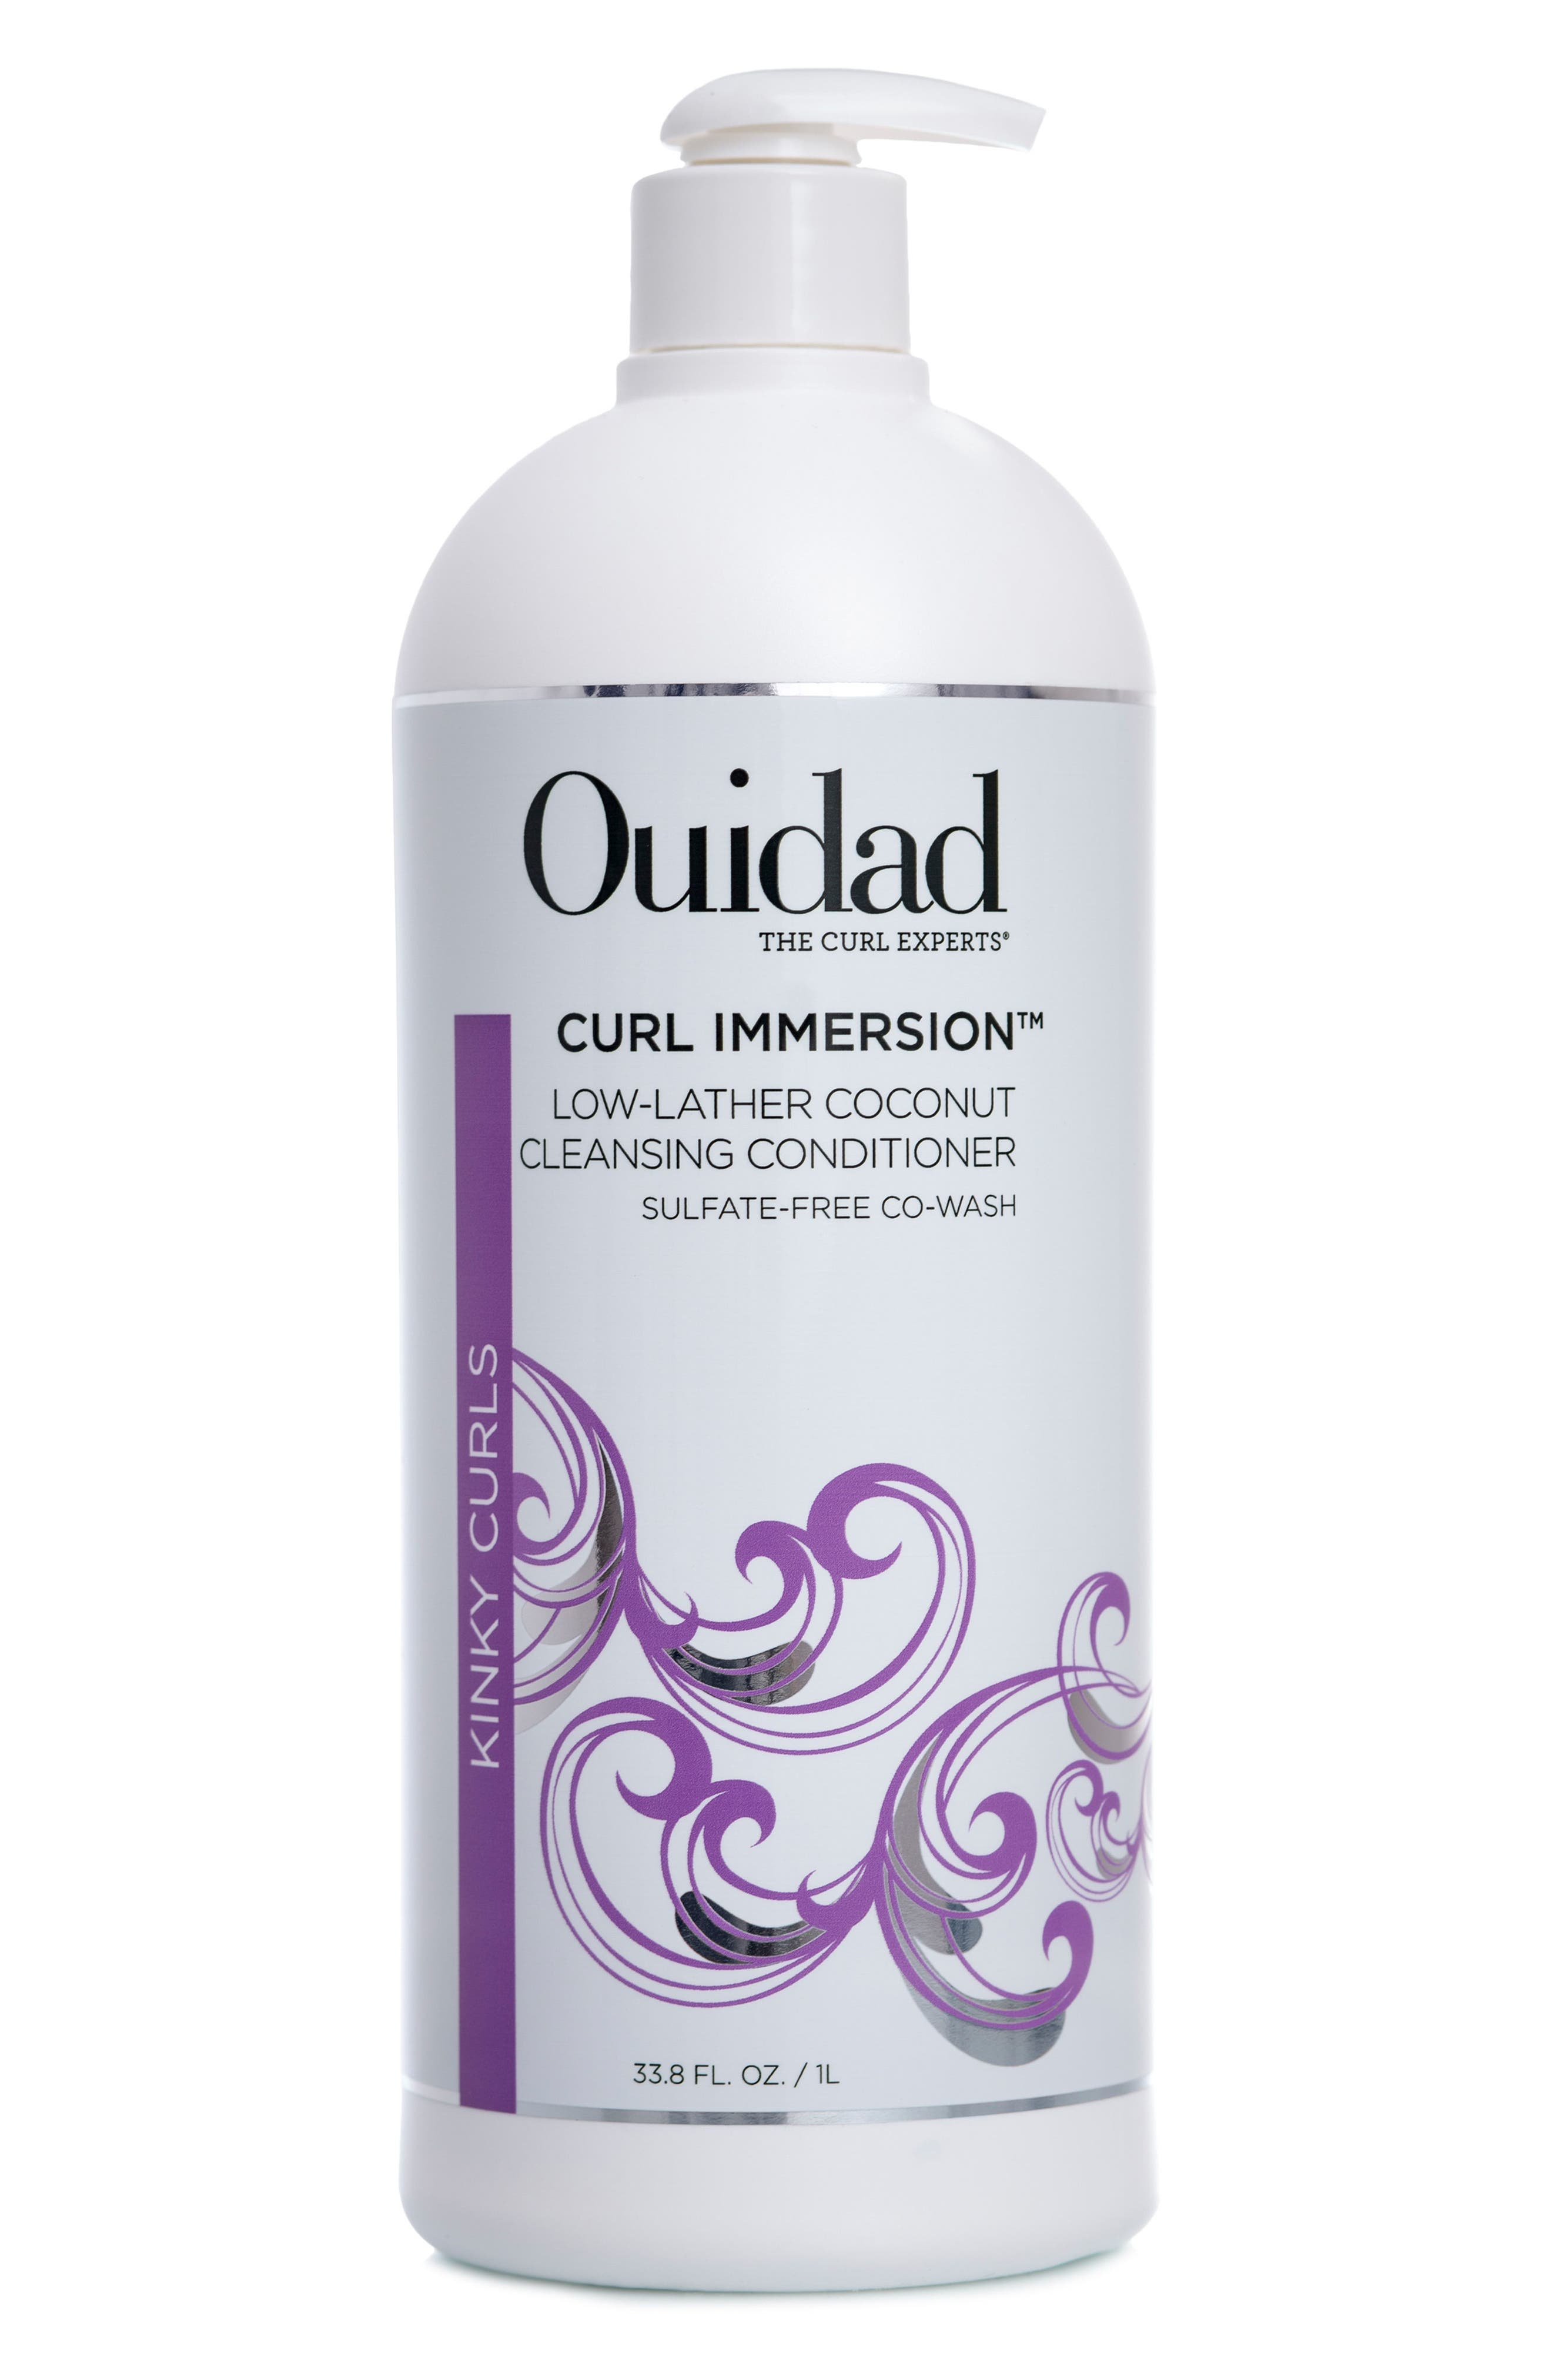 Ouidad Curl Immersion® Coconut Cleansing Conditioner